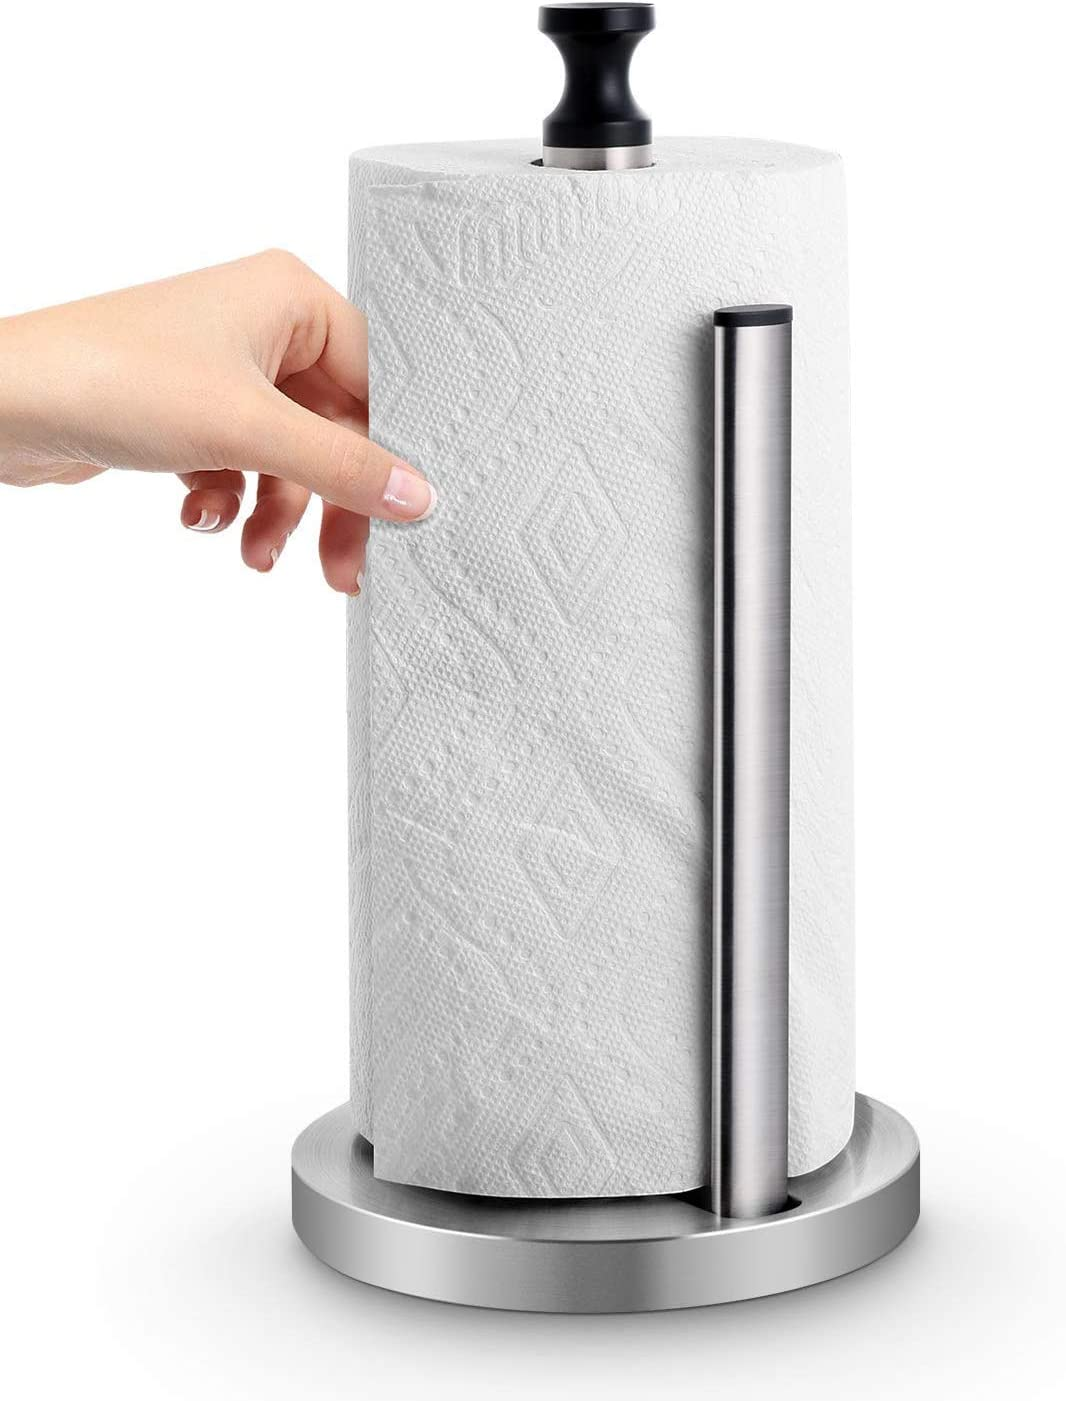 Homemaxs Paper Towel Holder Dispenser,One-Handed Tear Stainless Steel  Kitchen Paper Towel Dispenser with Weighted Unti-Skid Base and Spring  Active Arm